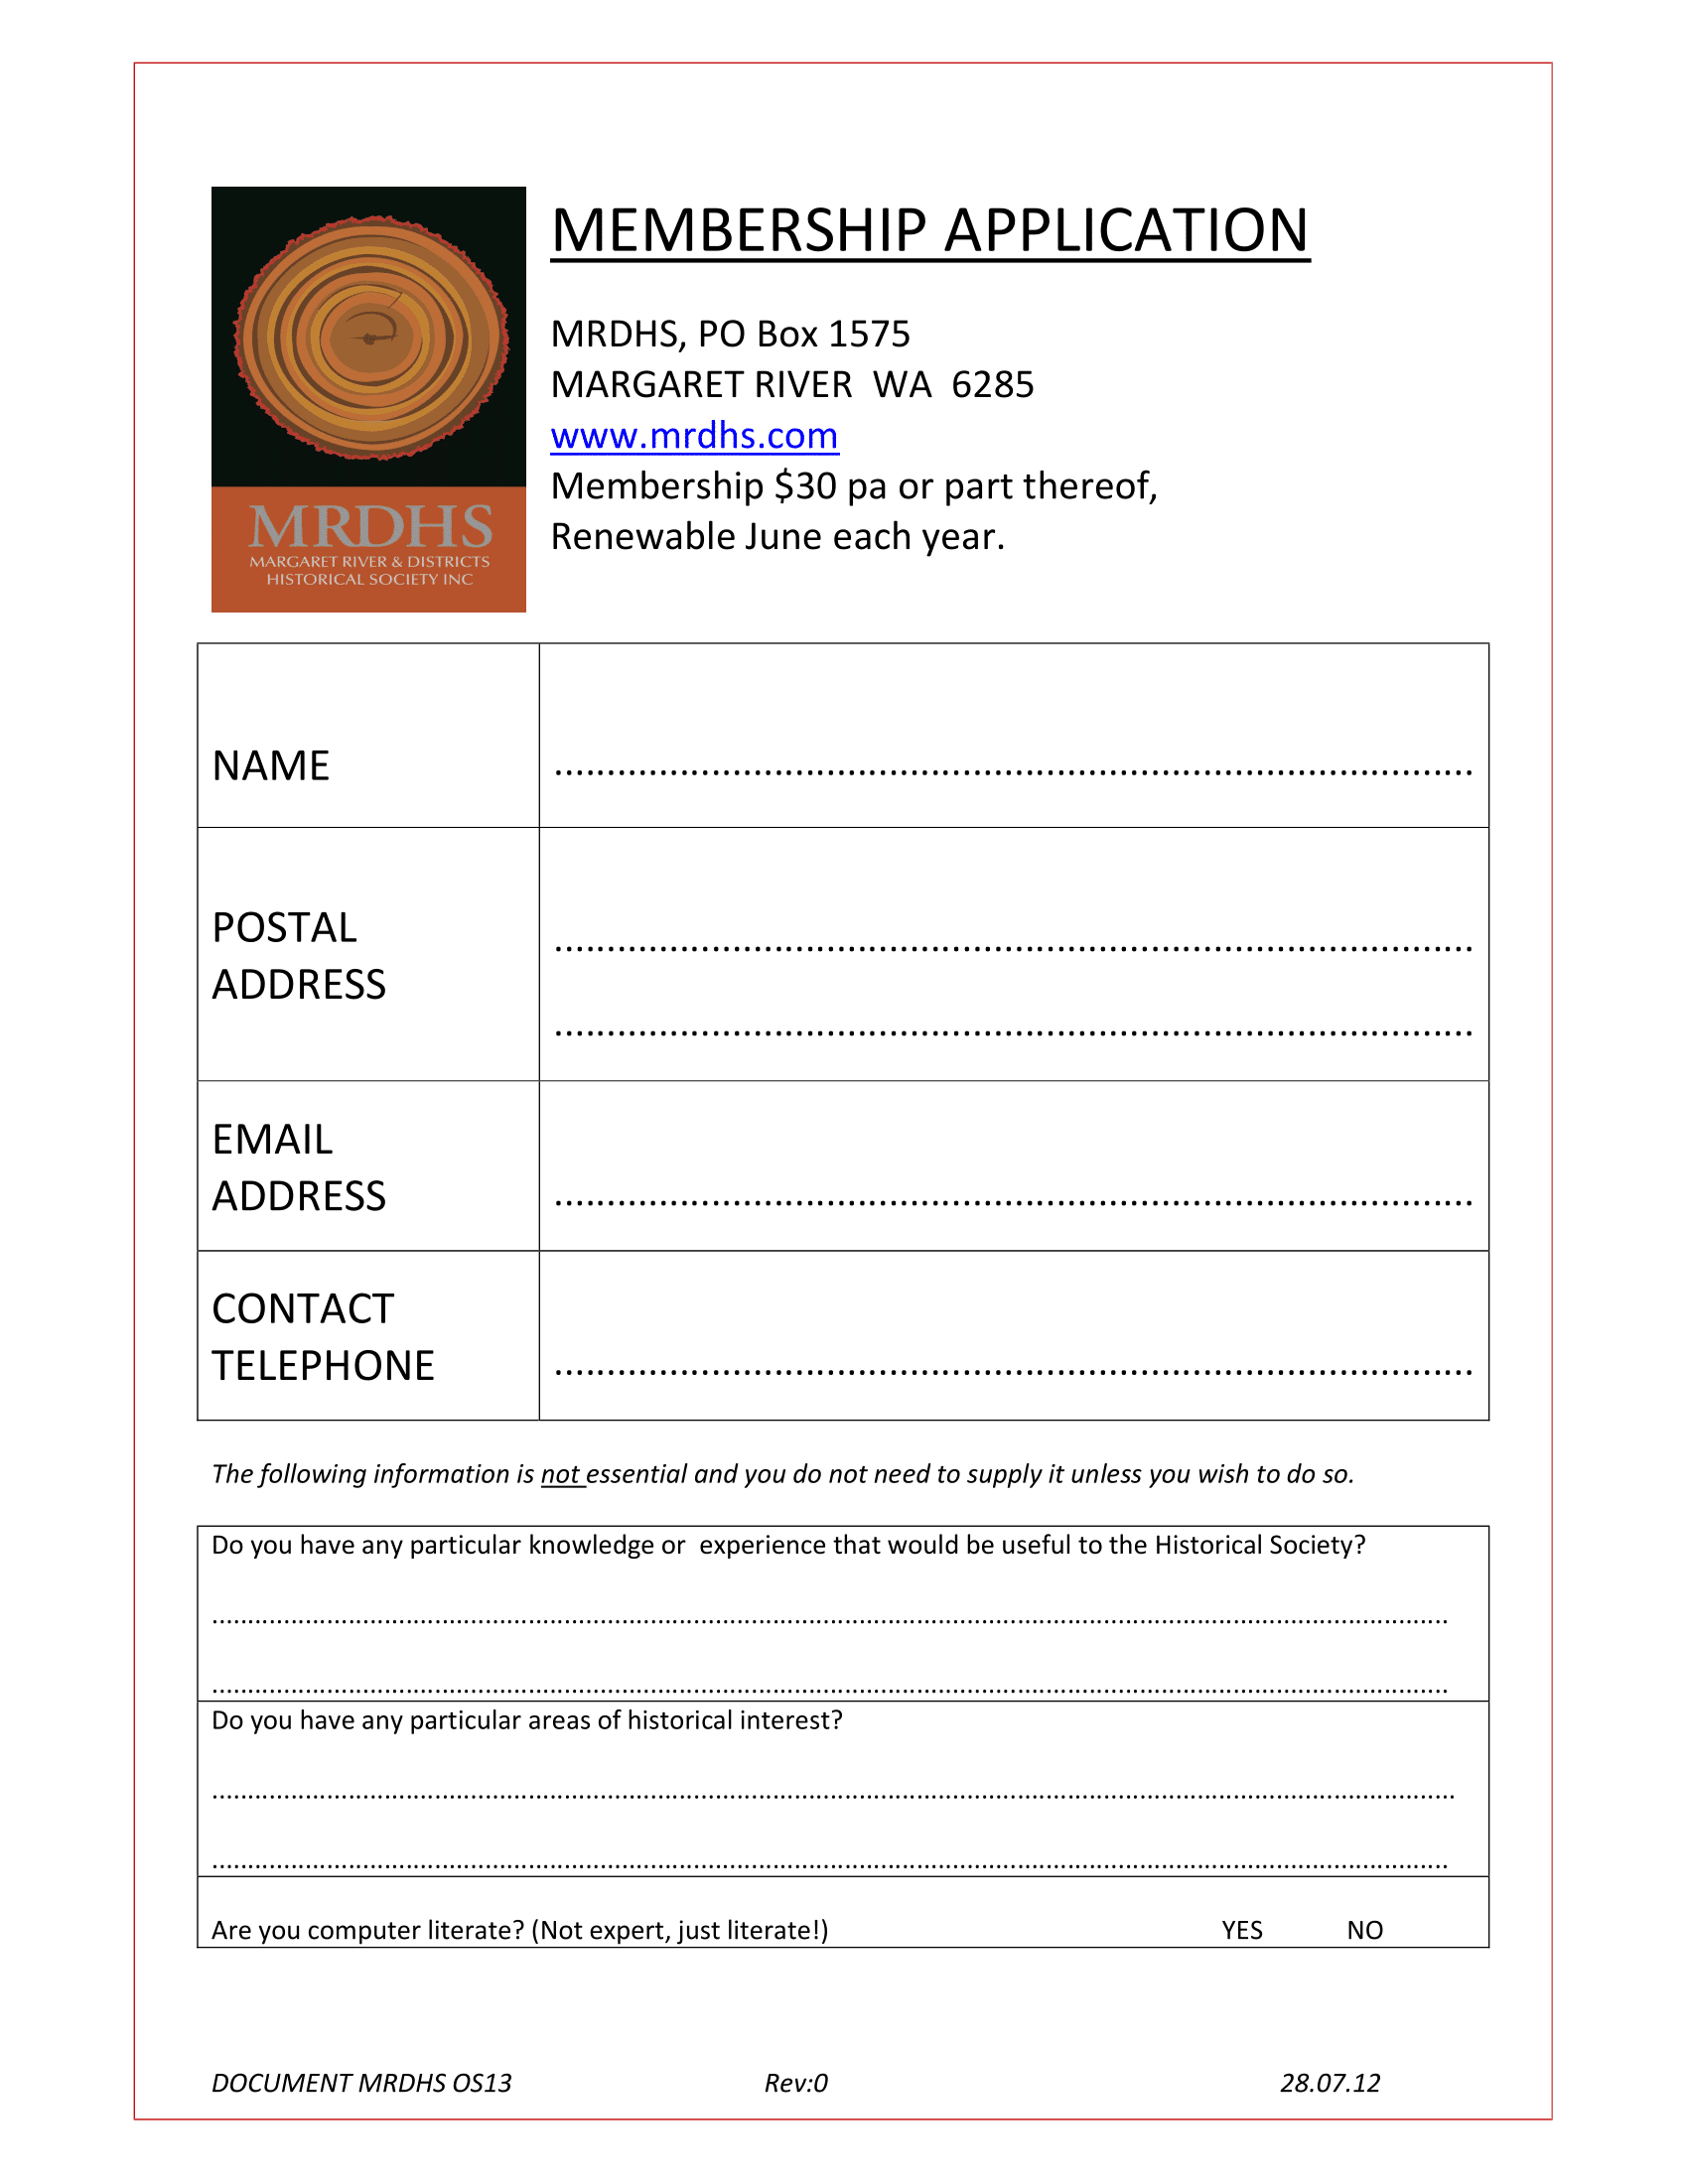 Membership application form (PDF document)